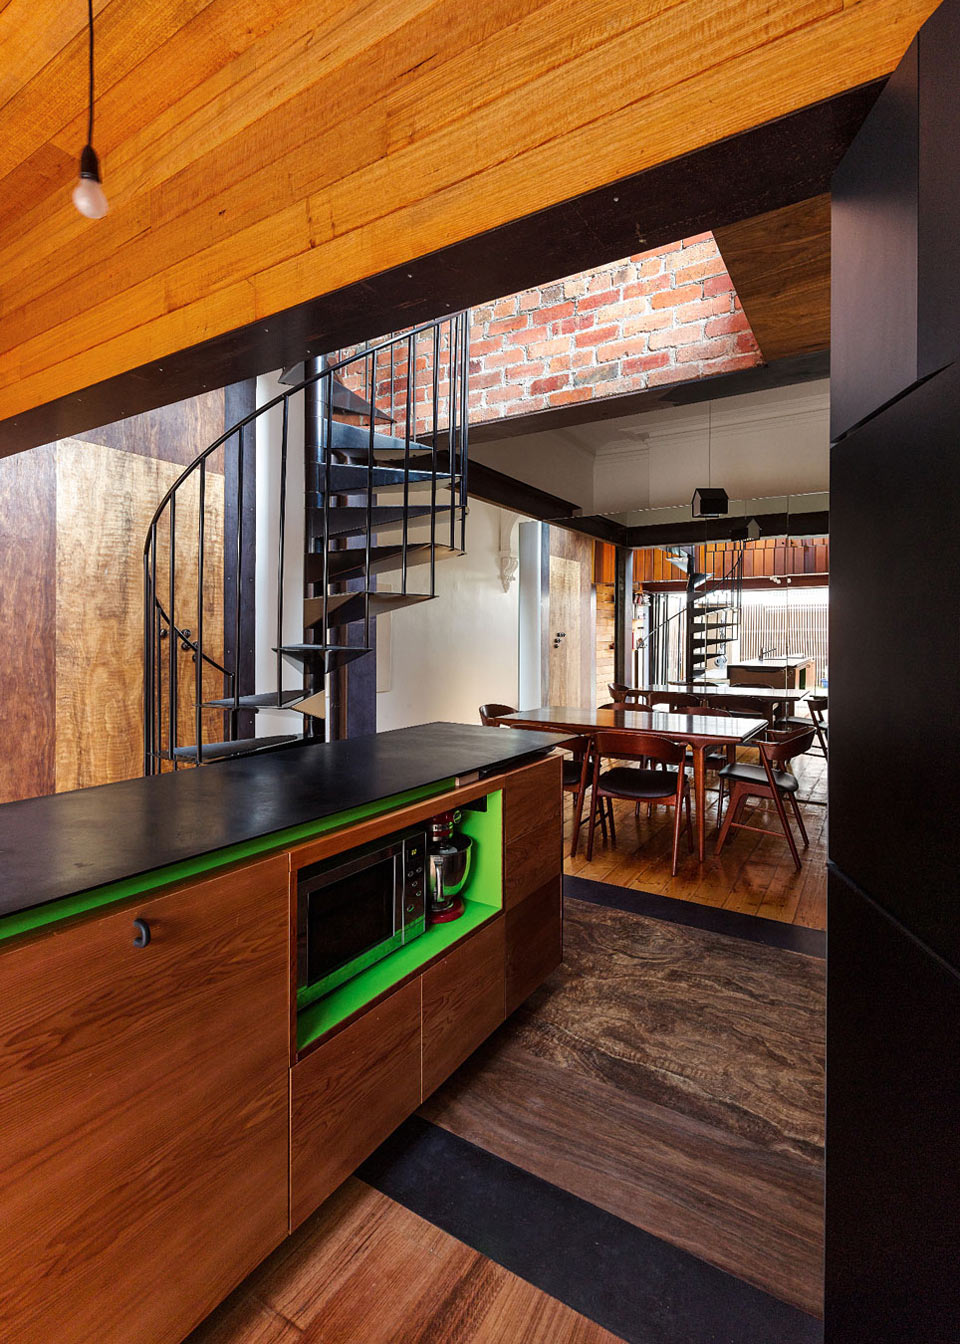 Spiral Stairs, Dining Space, Kitchen Island, Two-Home Extension Within a Single Building in Richmond, Australia